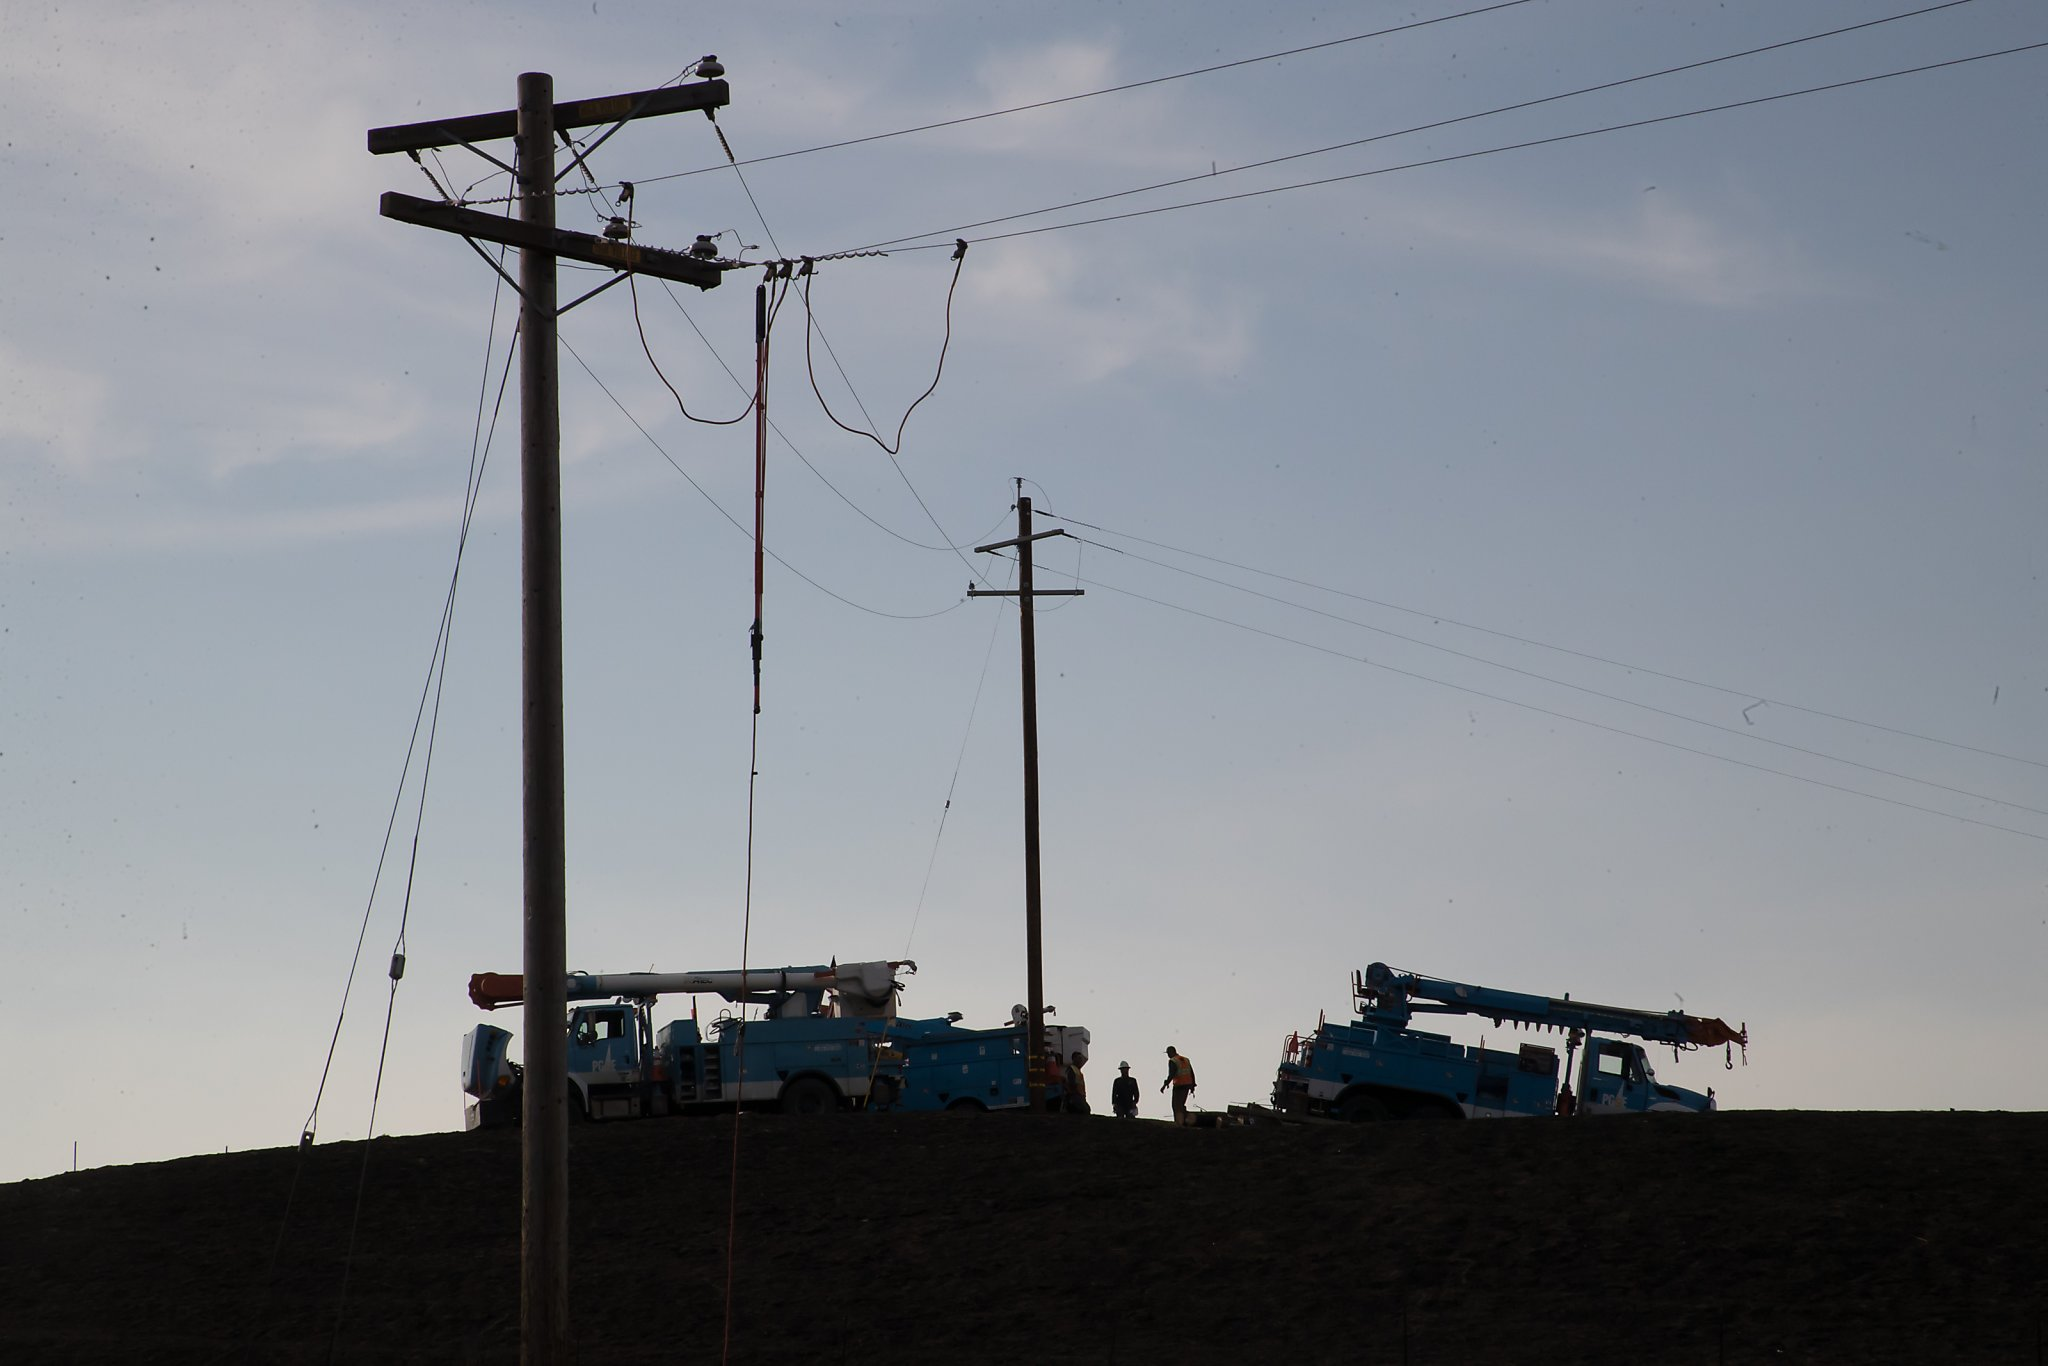 PG&E could pay dearly for North Bay fires, even if it followed rules ...